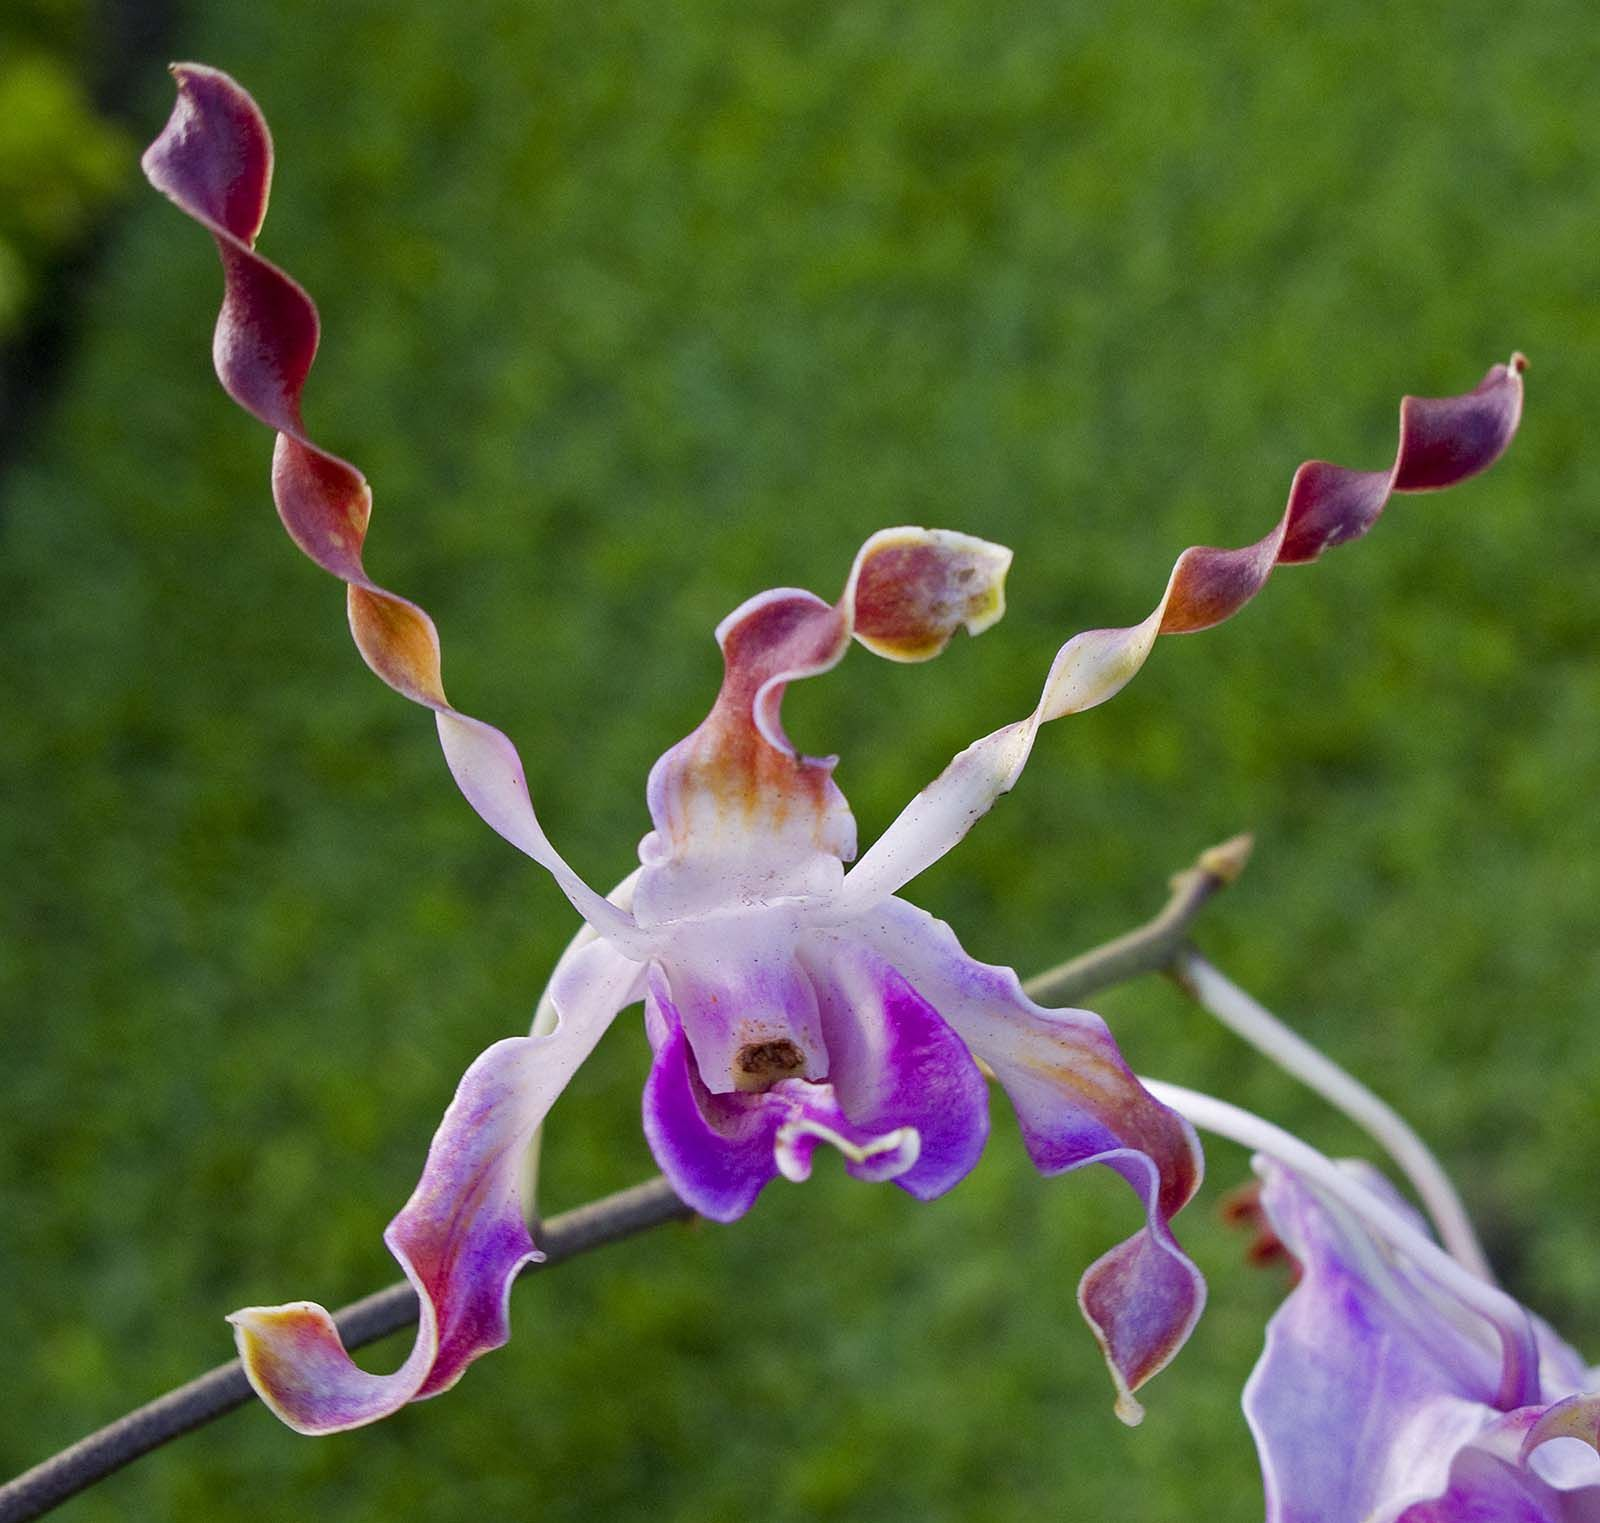 Image detail for -Sunshine and Orchids